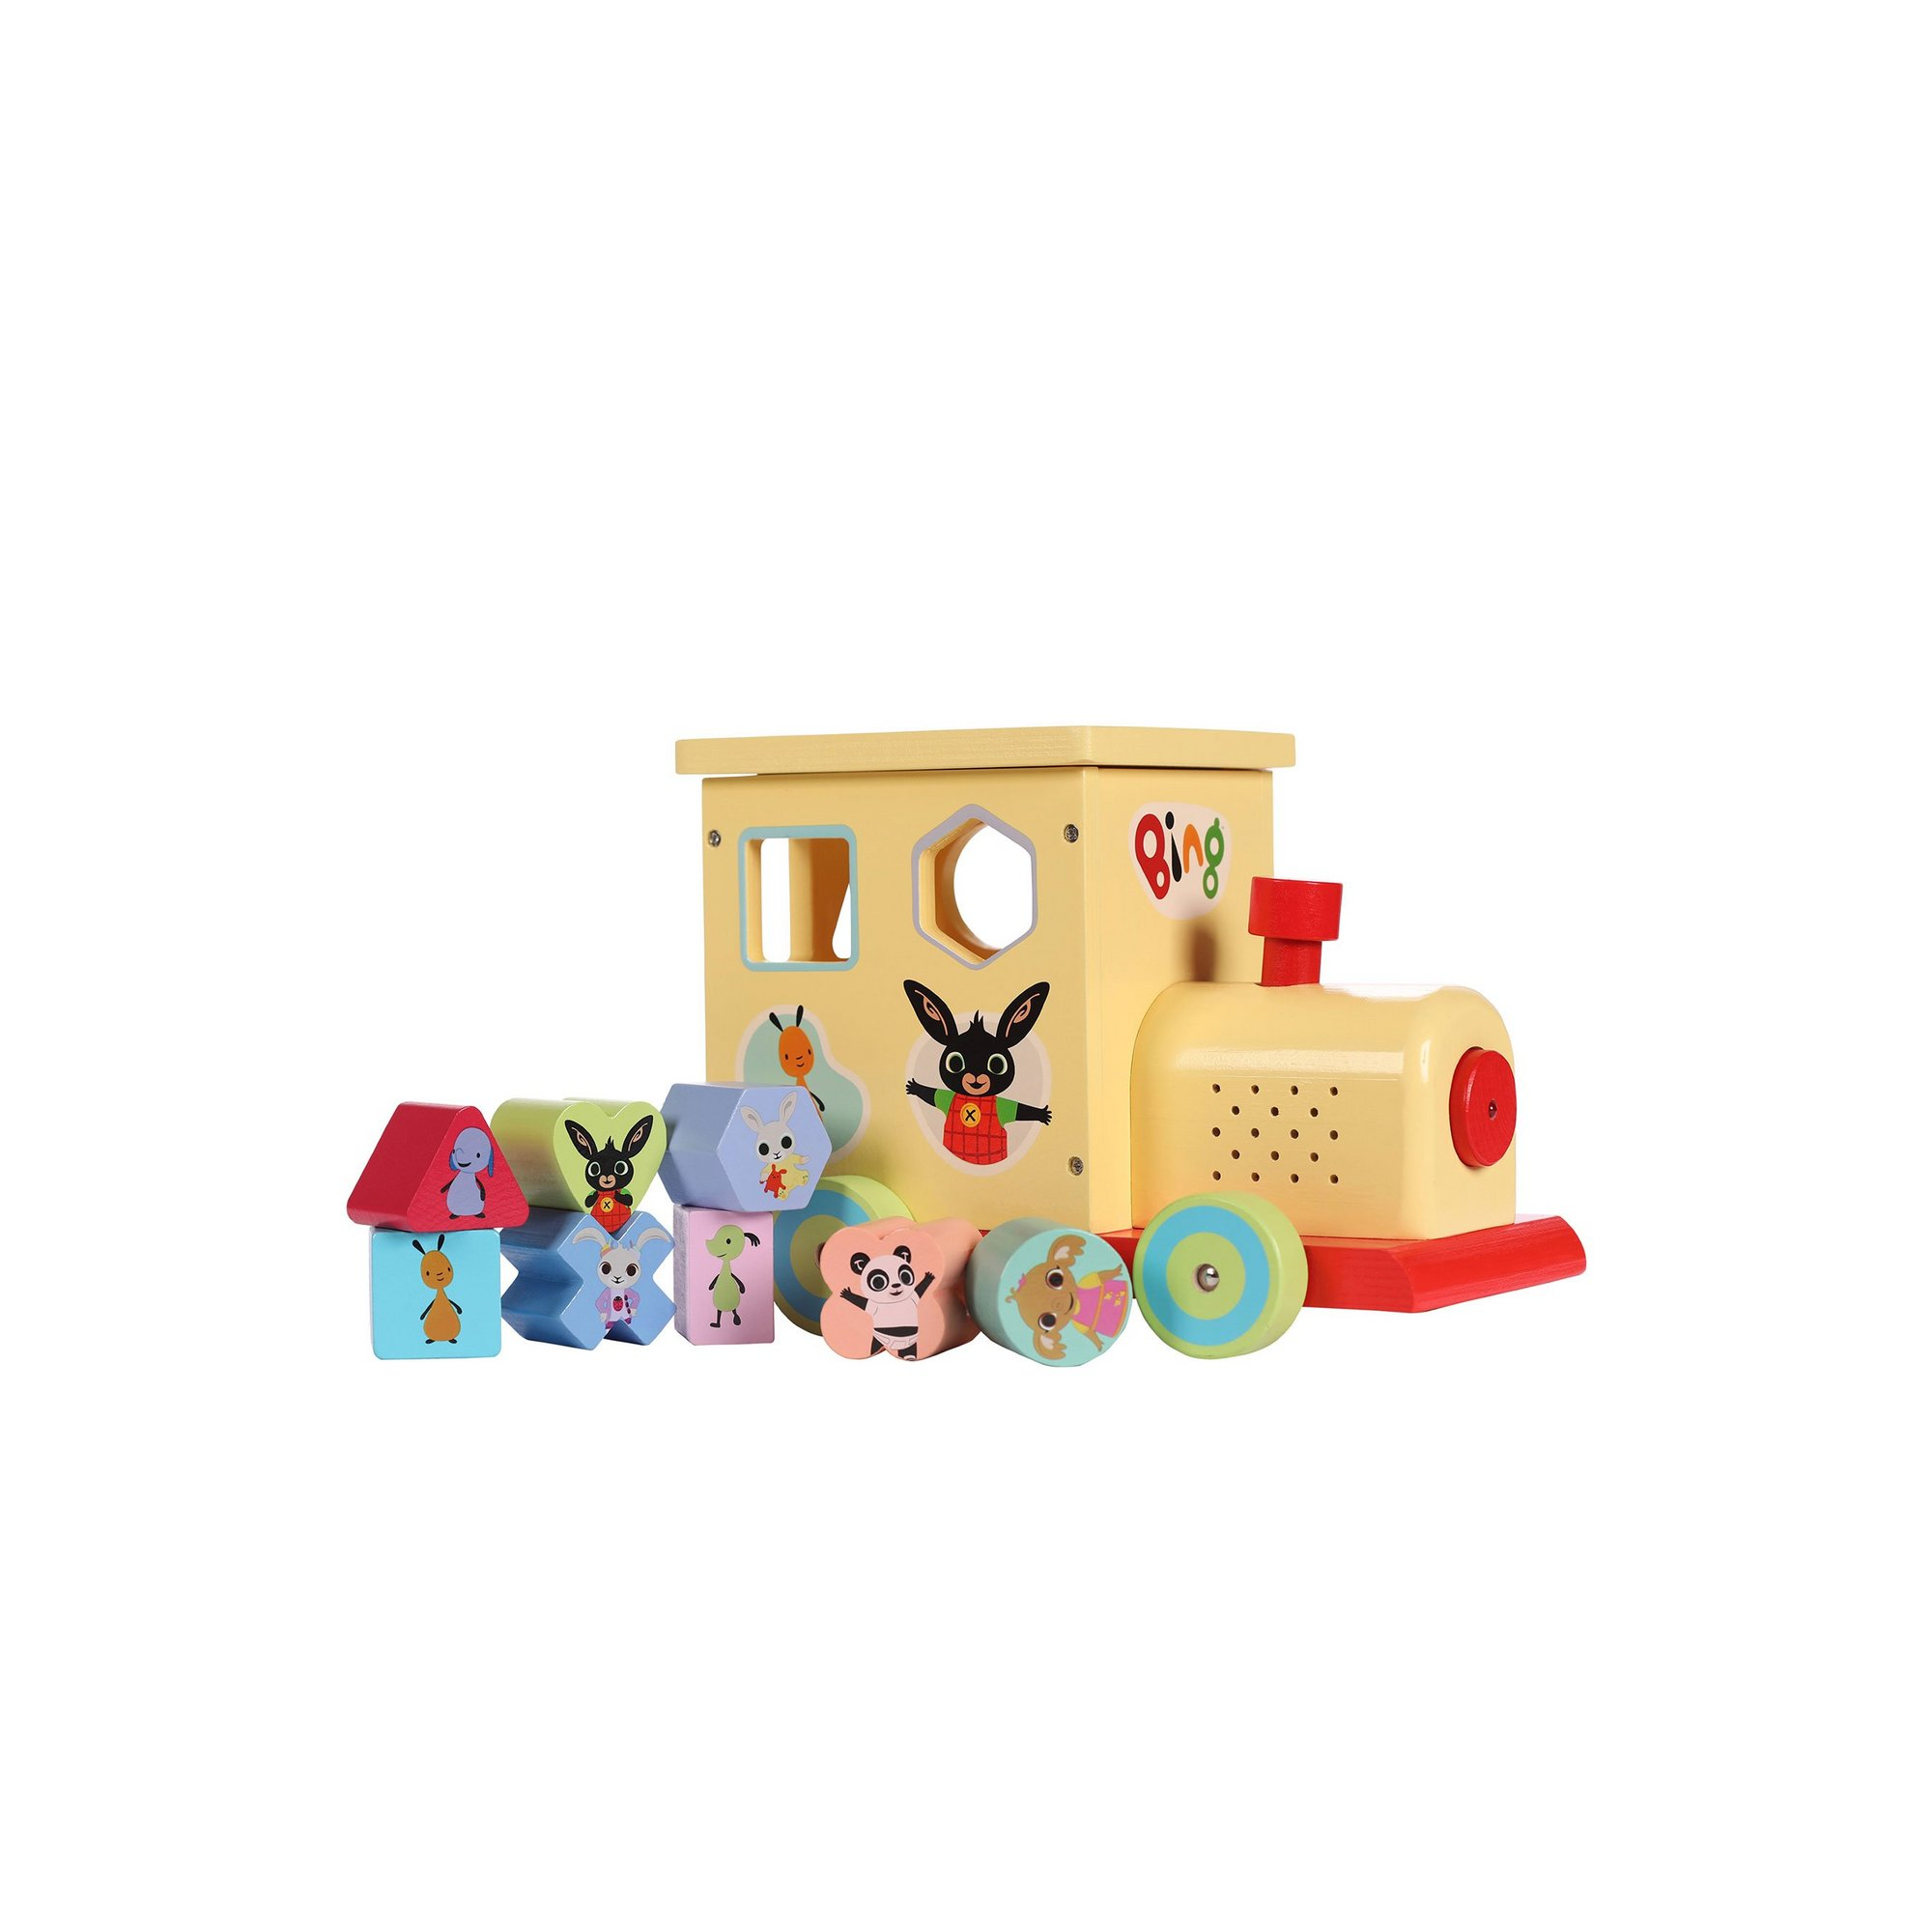 Image of Bing Shape Sorter Train with Lights and Sound